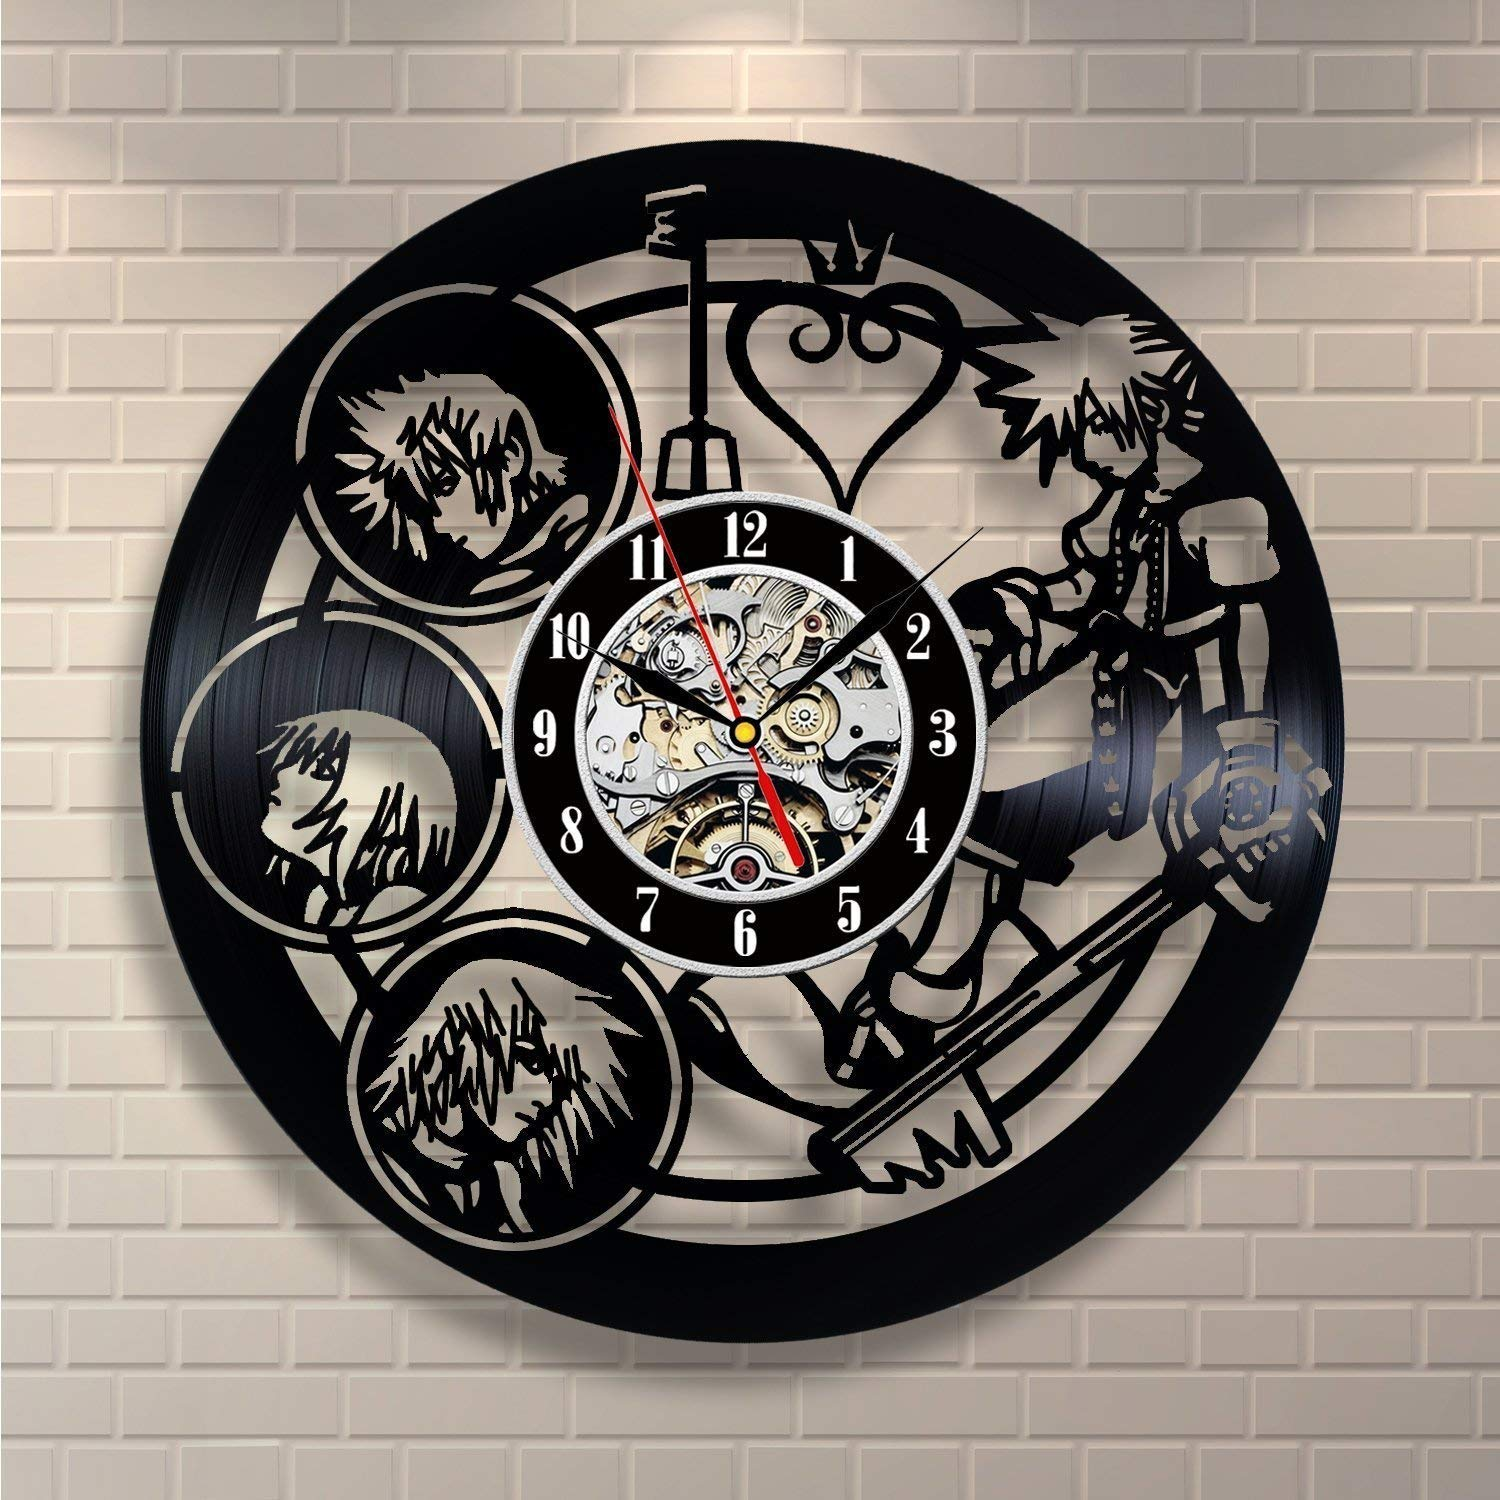 Kingdom Hearts Anime Vinyl Record Design Wall Clock – Decorate your home with Modern Kingdom Hearts Story Characters Art – Best gift for him and her, girlfriend or boyfriend – Win a prize for feedback